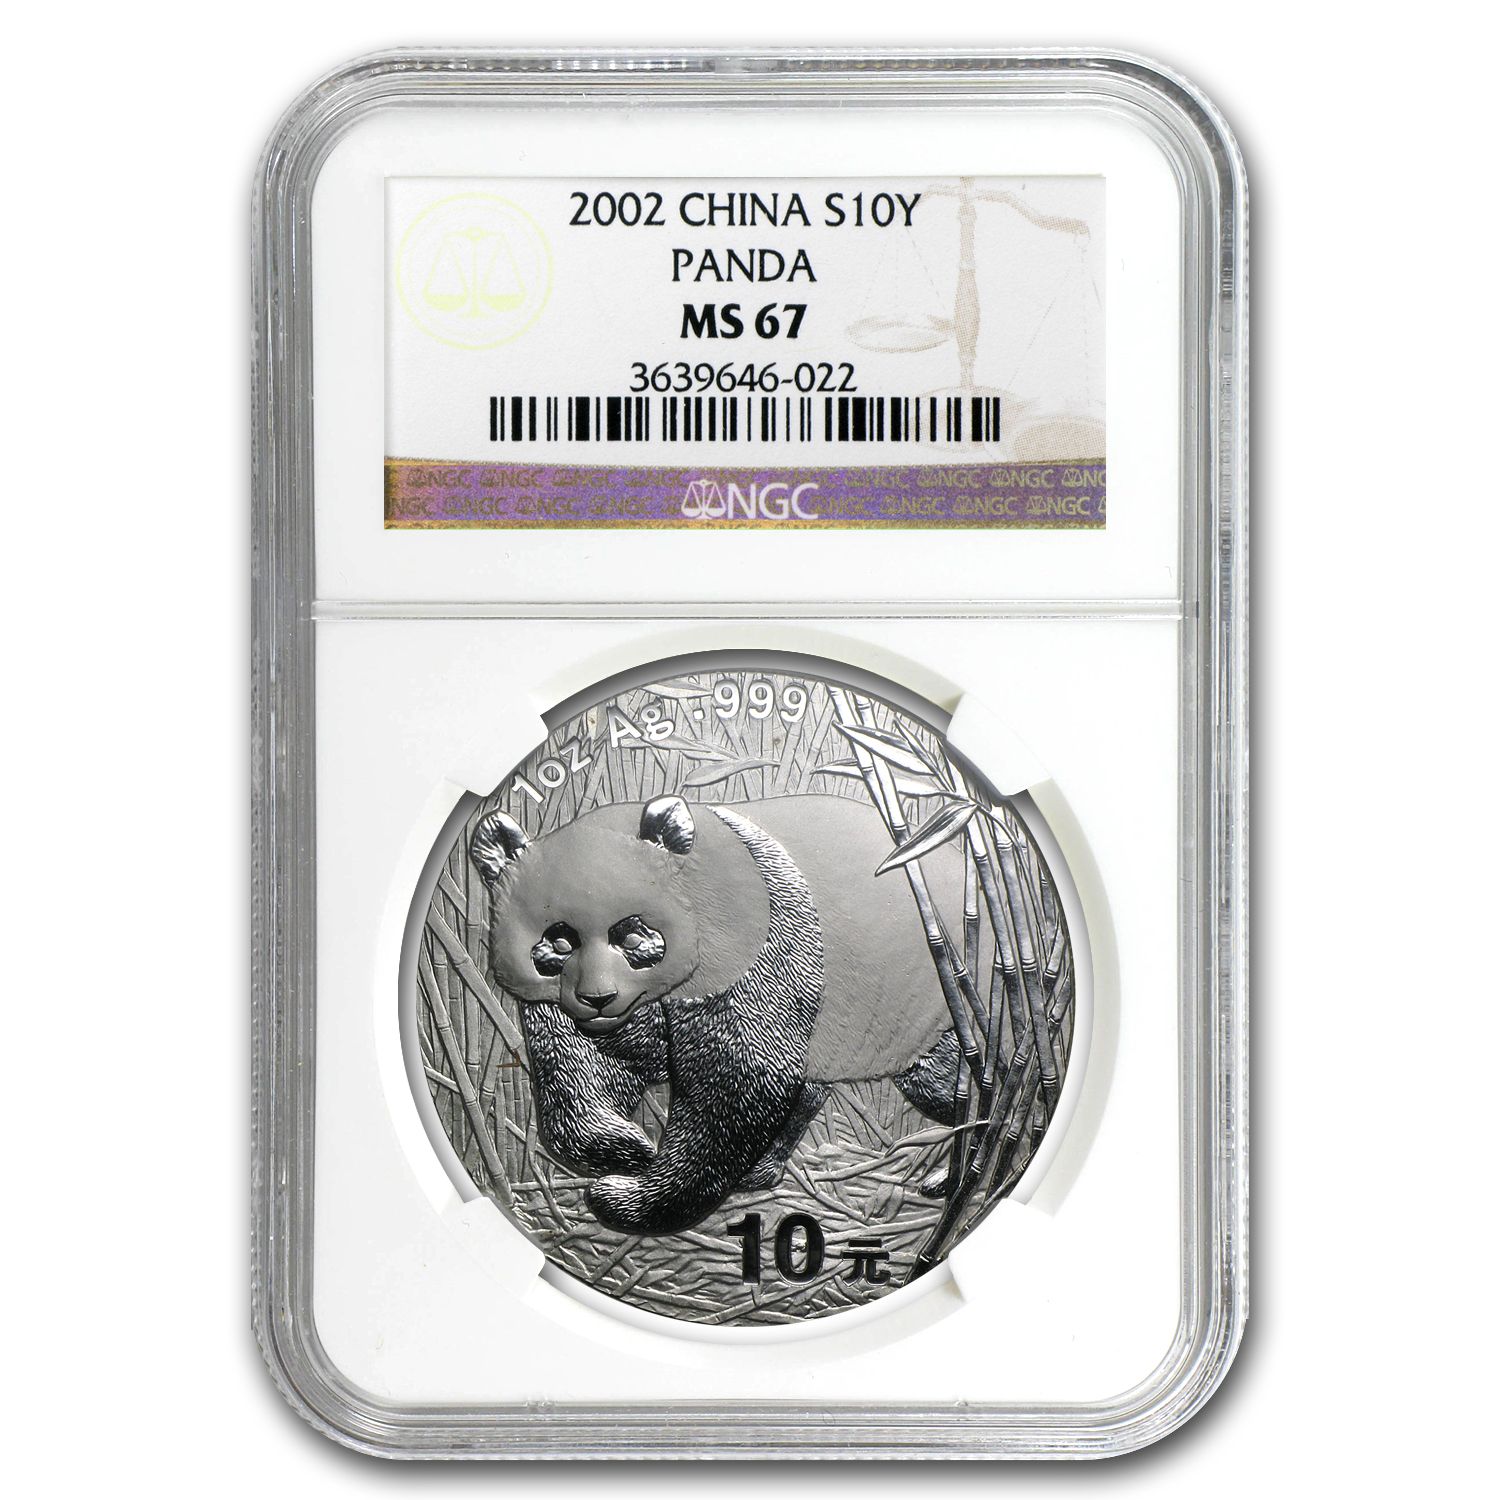 2002 China 1 oz Silver Panda MS-67 NGC